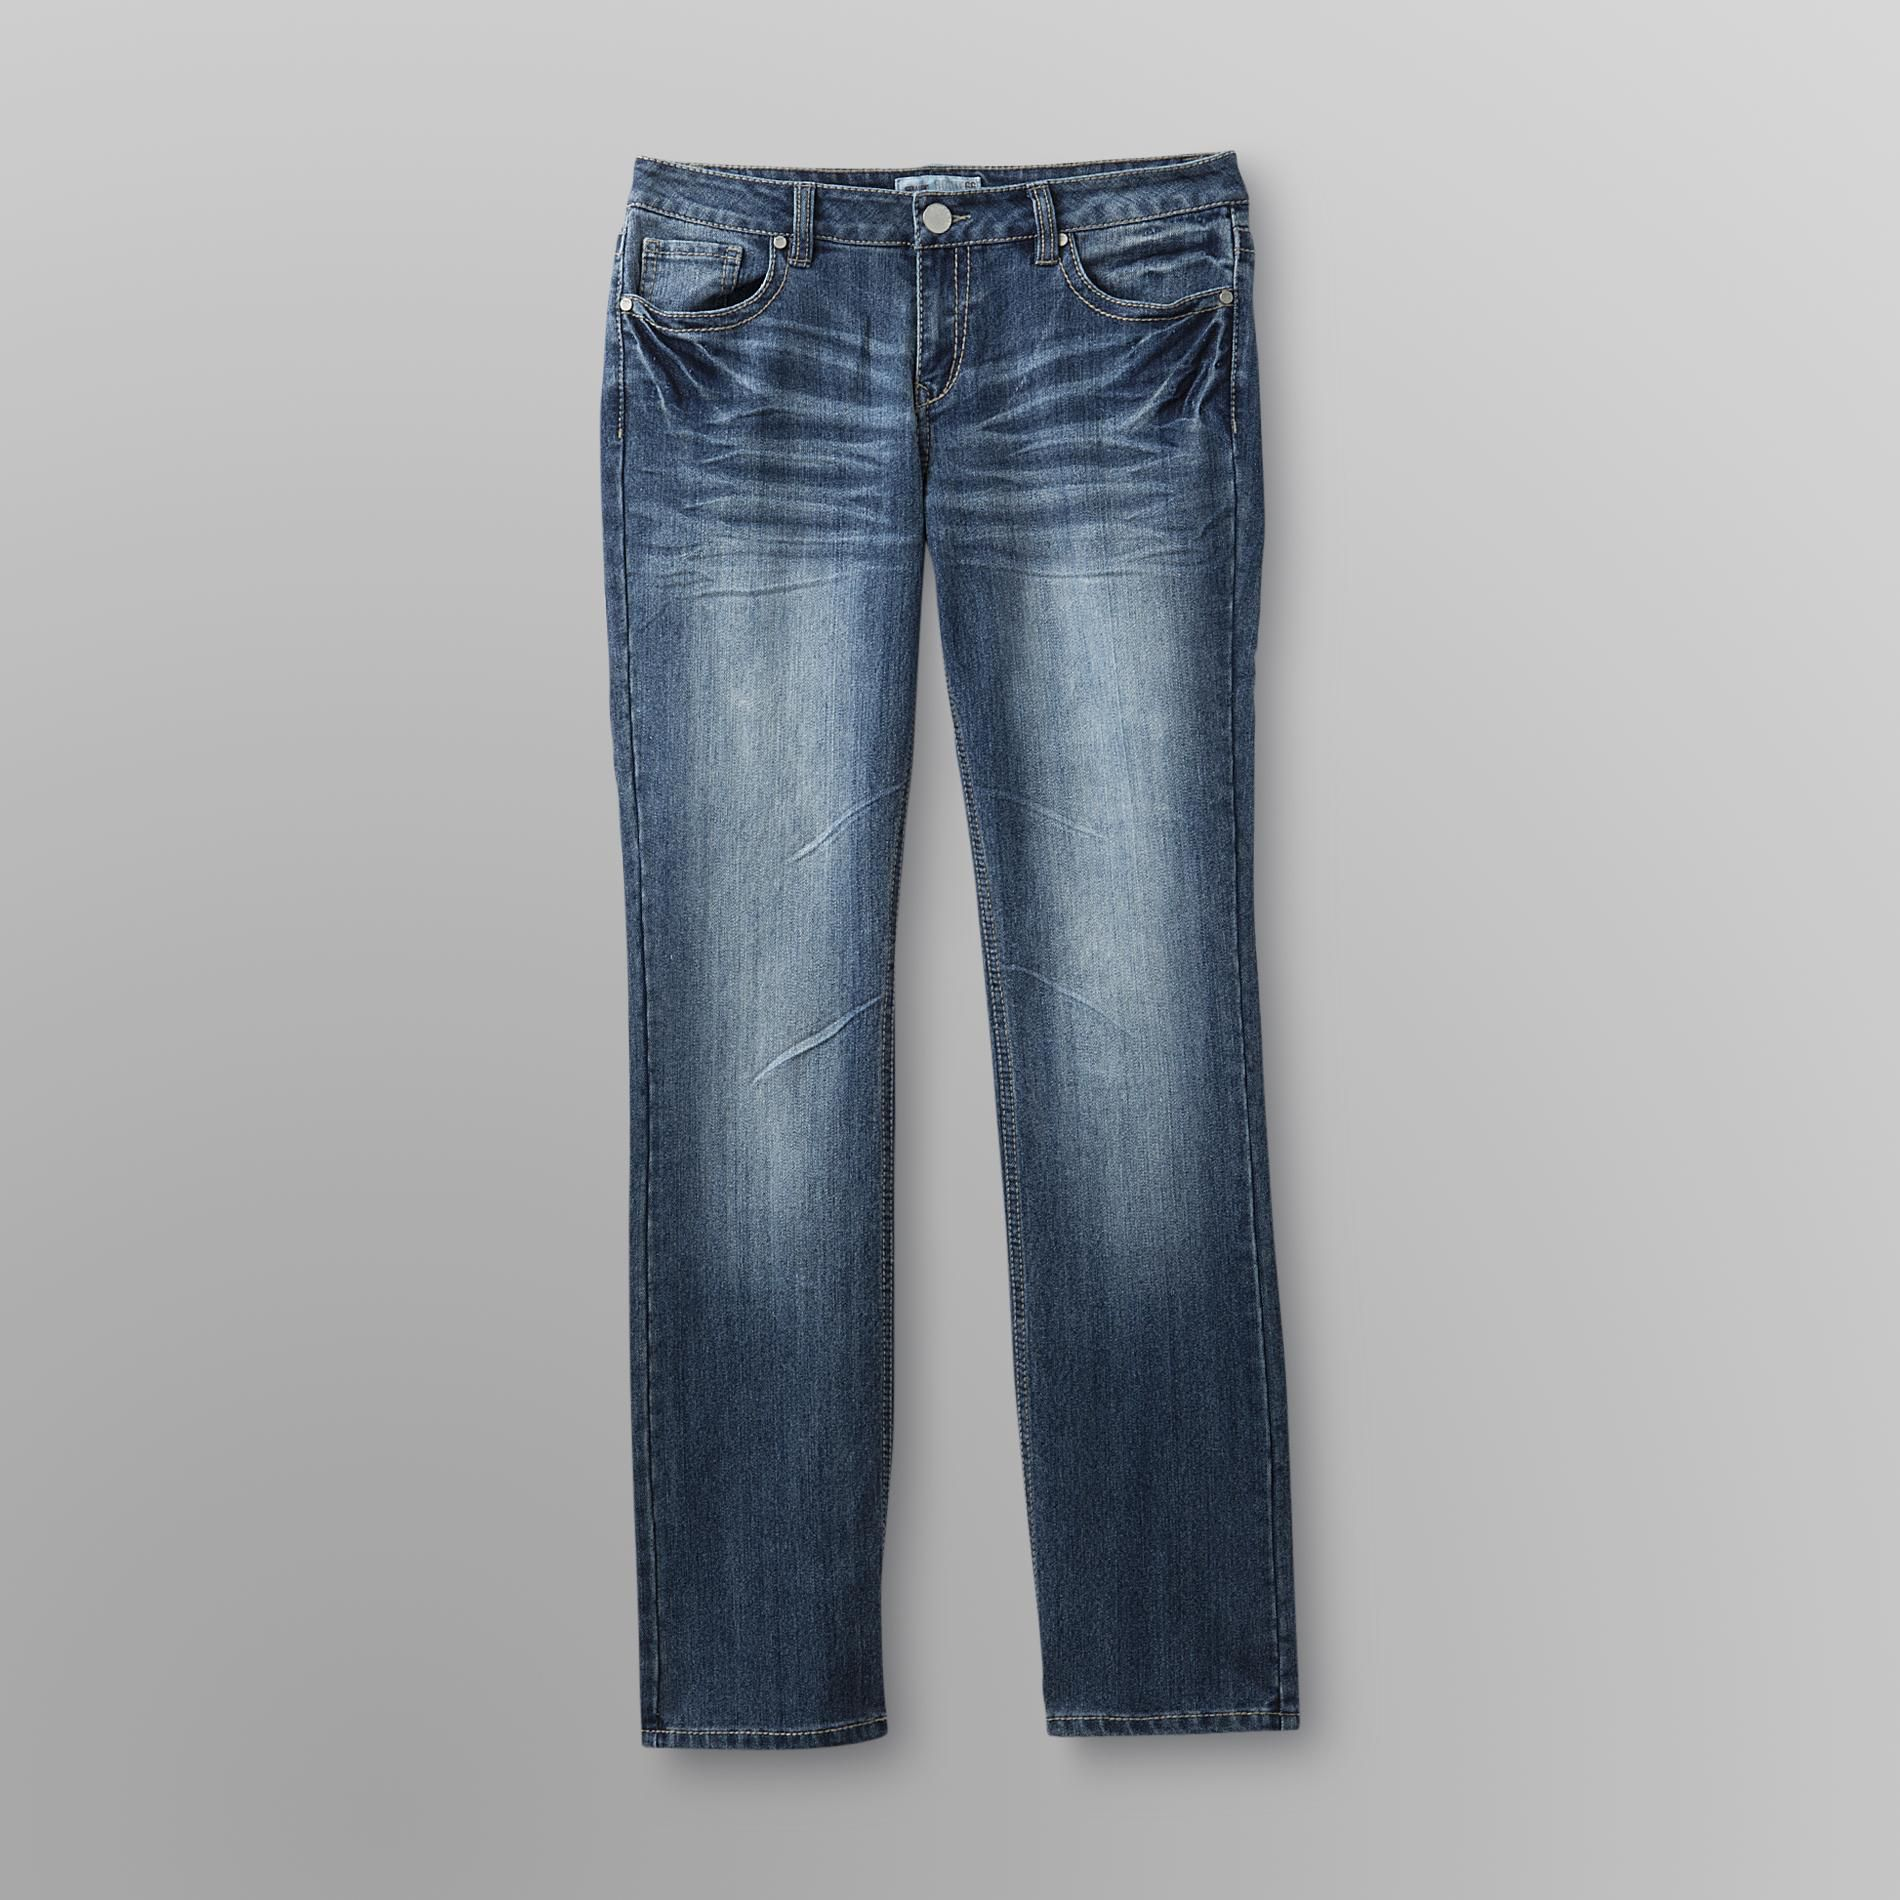 Route 66 Women's Low Rise Straight Leg Jeans at Kmart.com